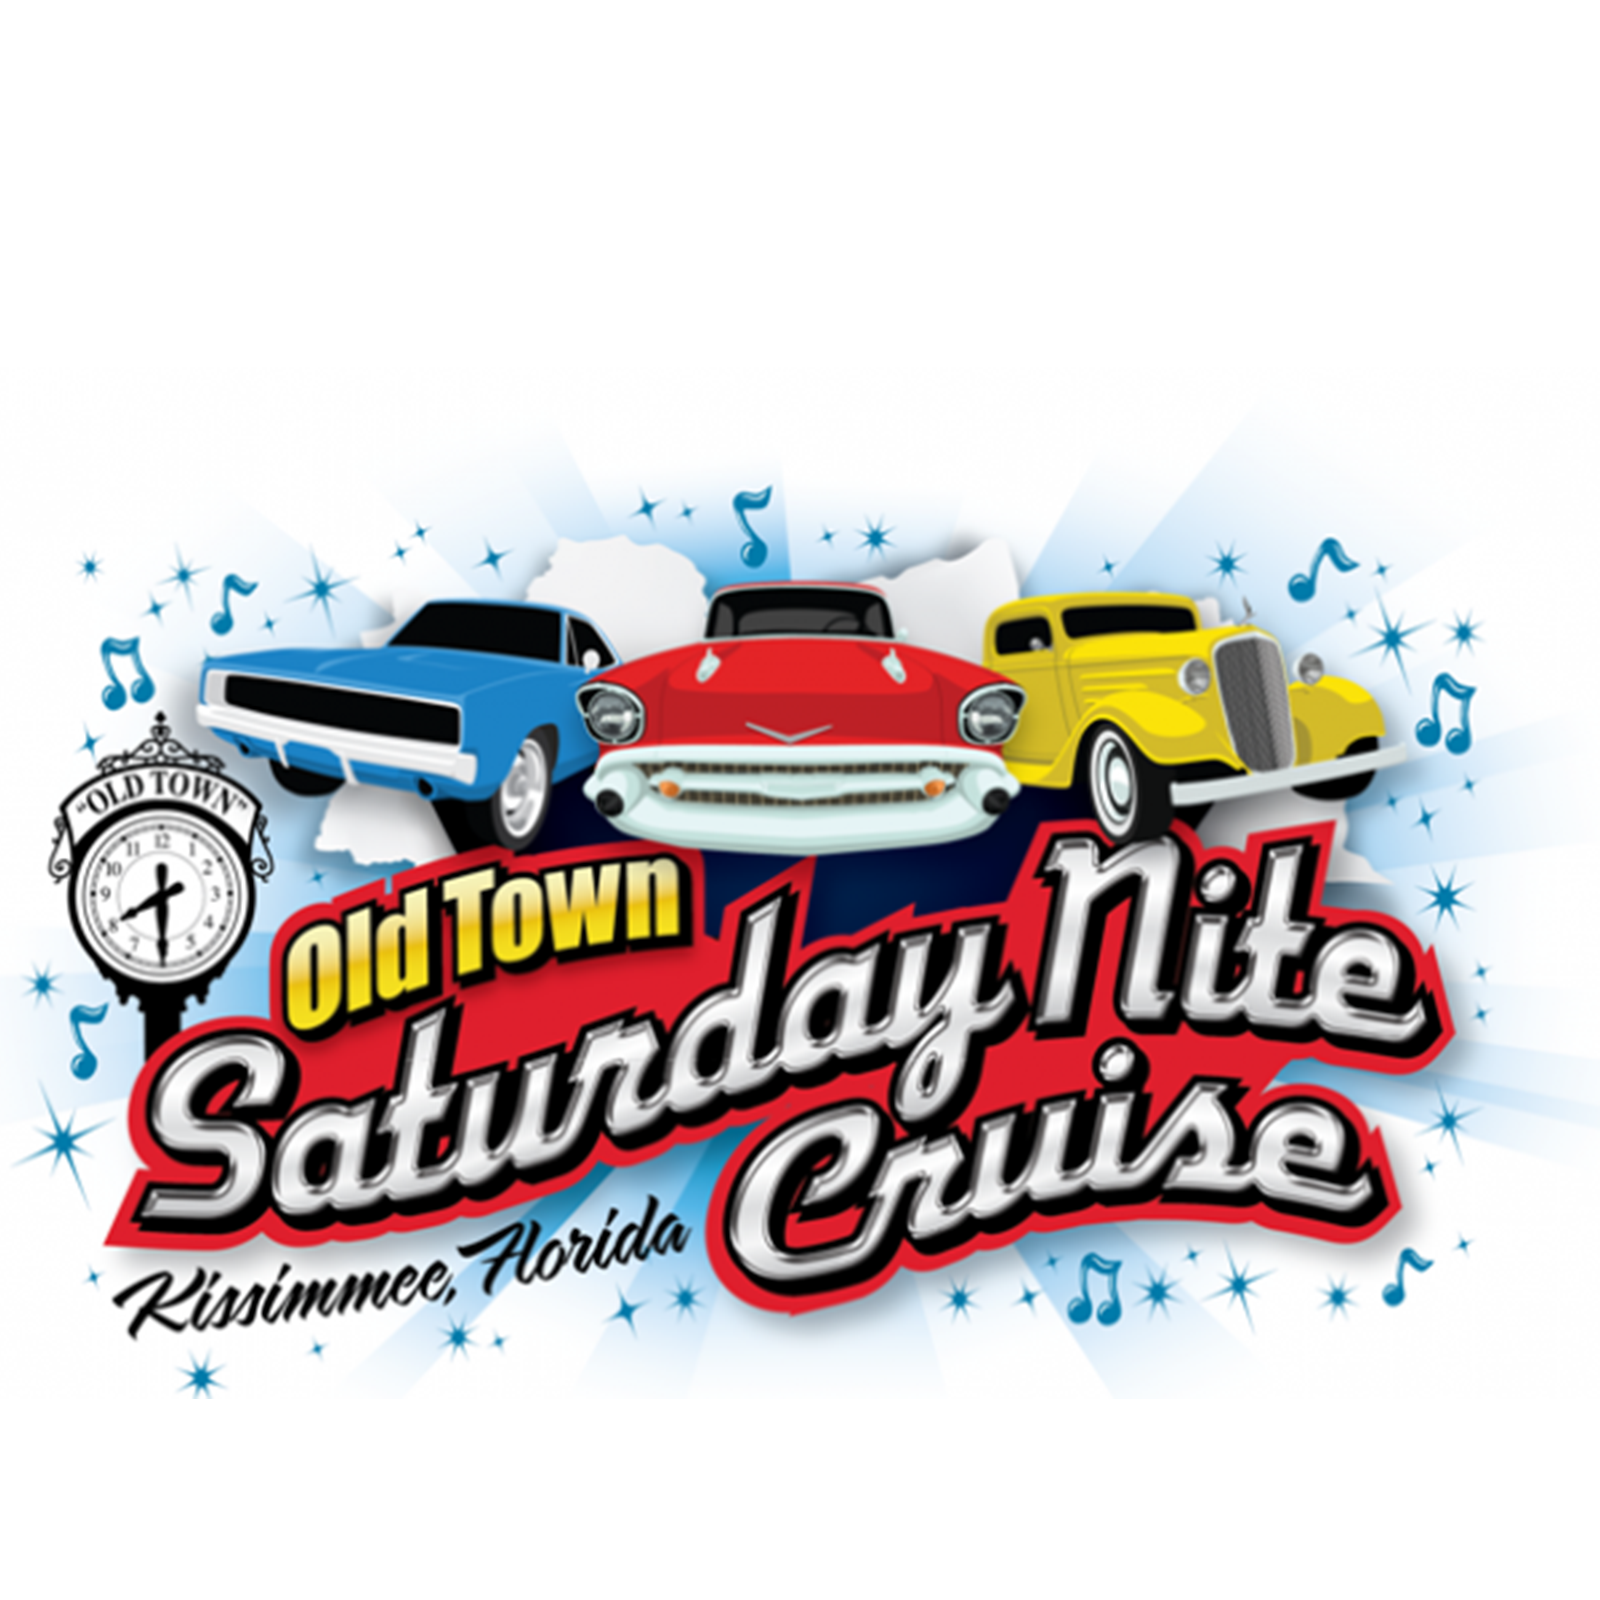 Saturday Nite Cruise At Old Town Experience Kissimmee - Kissimmee car show saturday